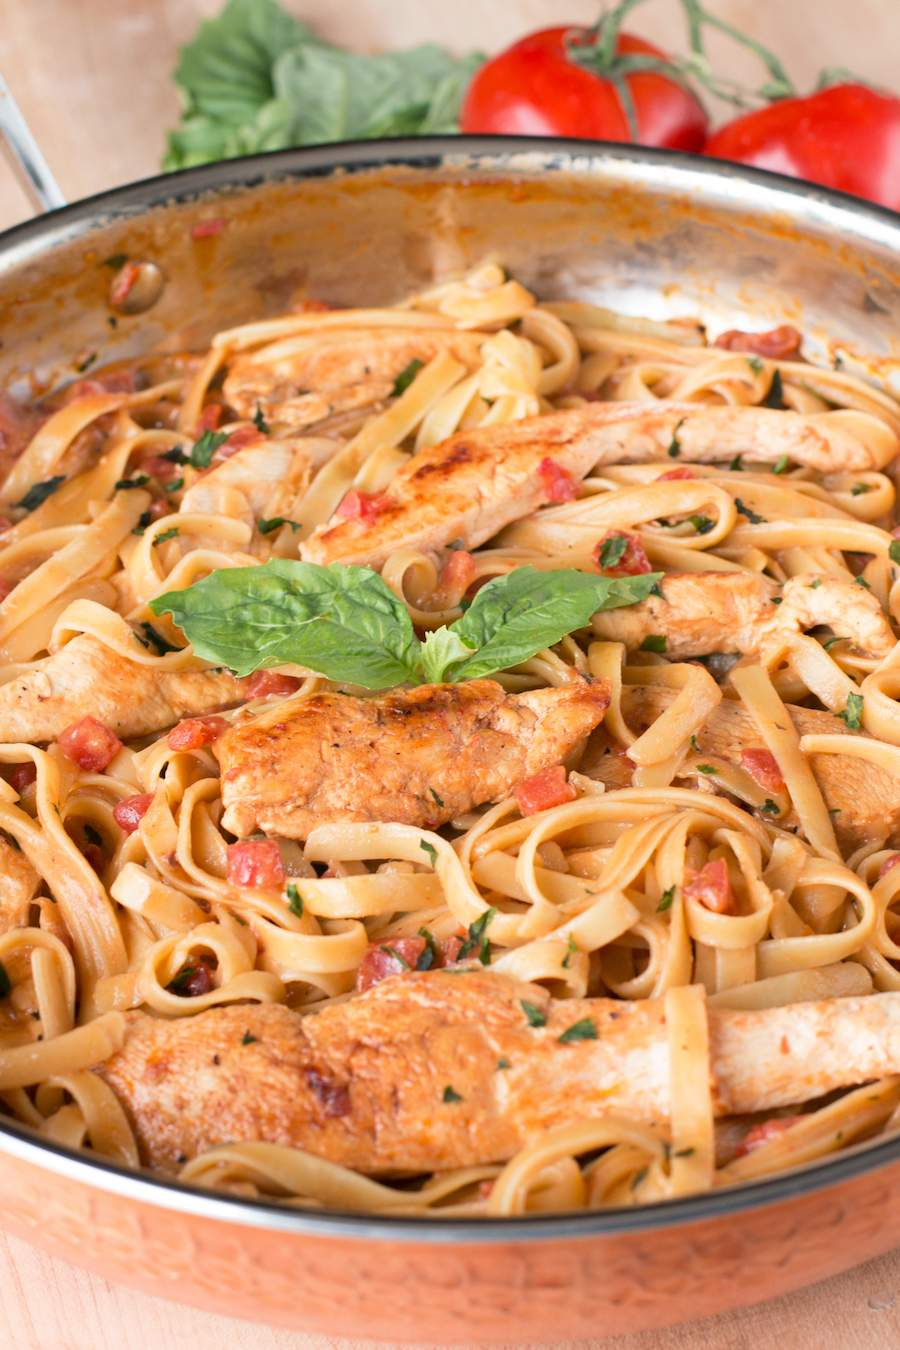 How To Make Tomato Basil Chicken Pasta